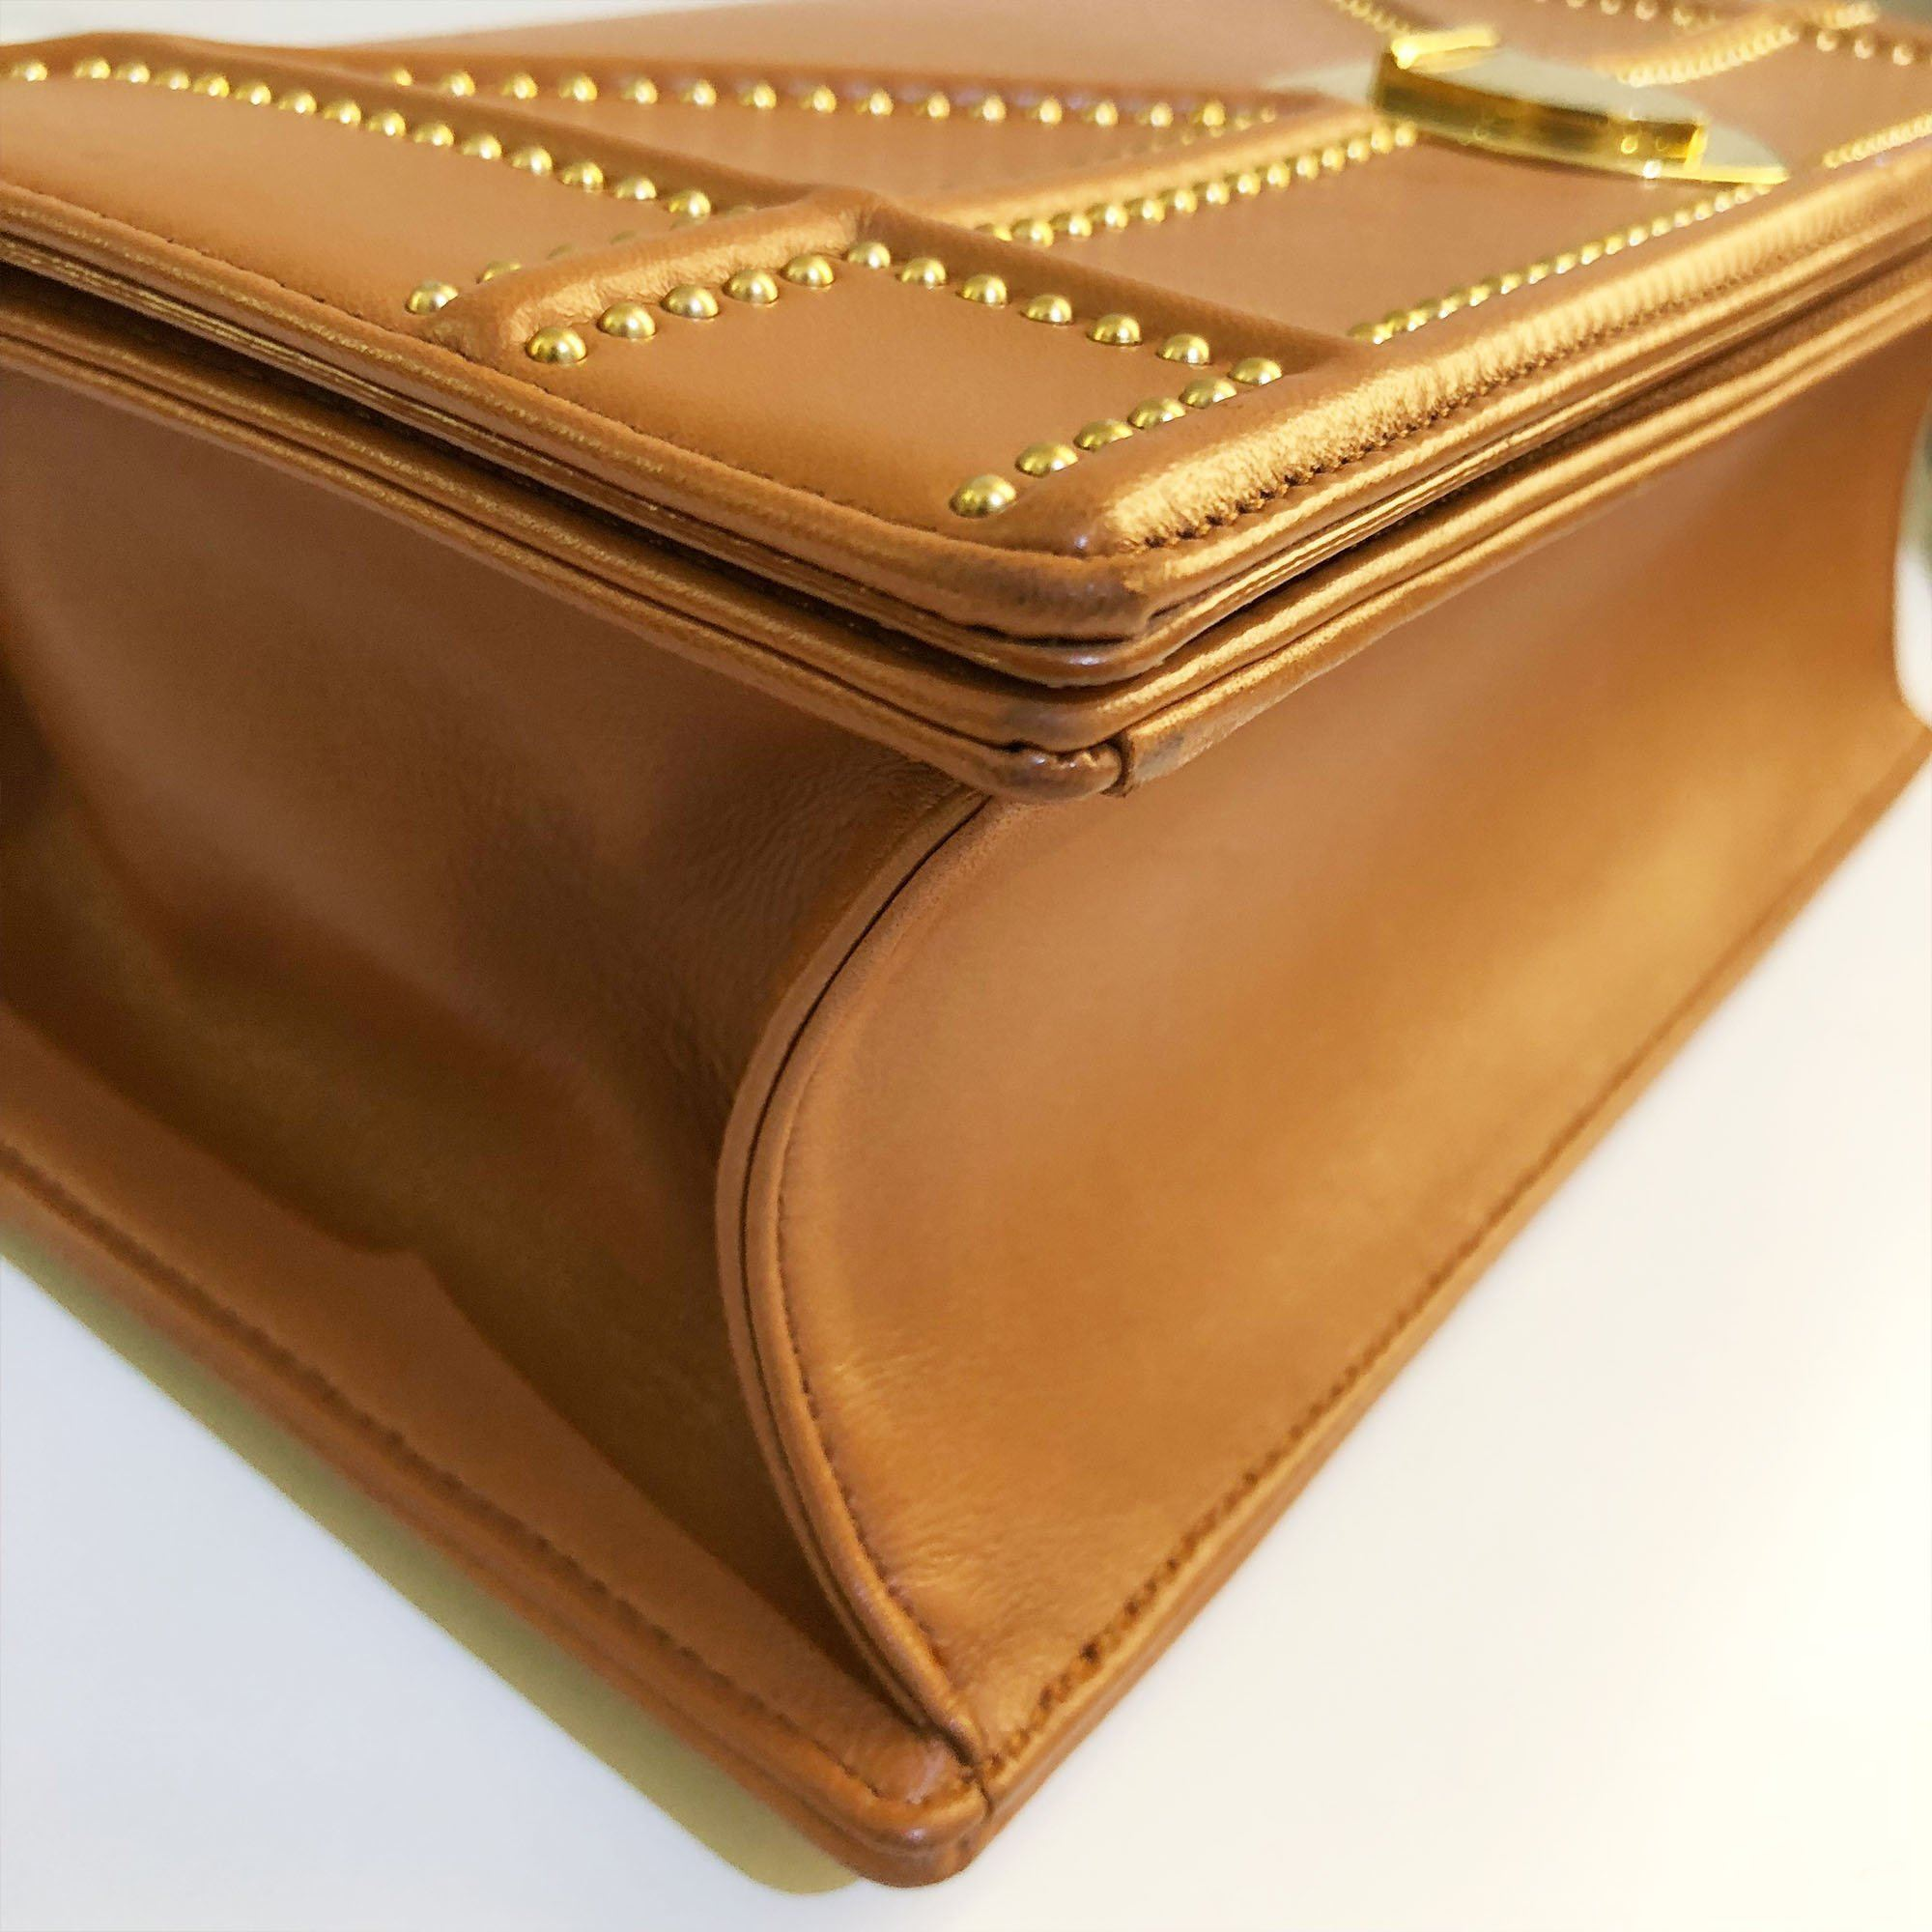 Christian Dior Diorama Gold Lambskin Leather Studded